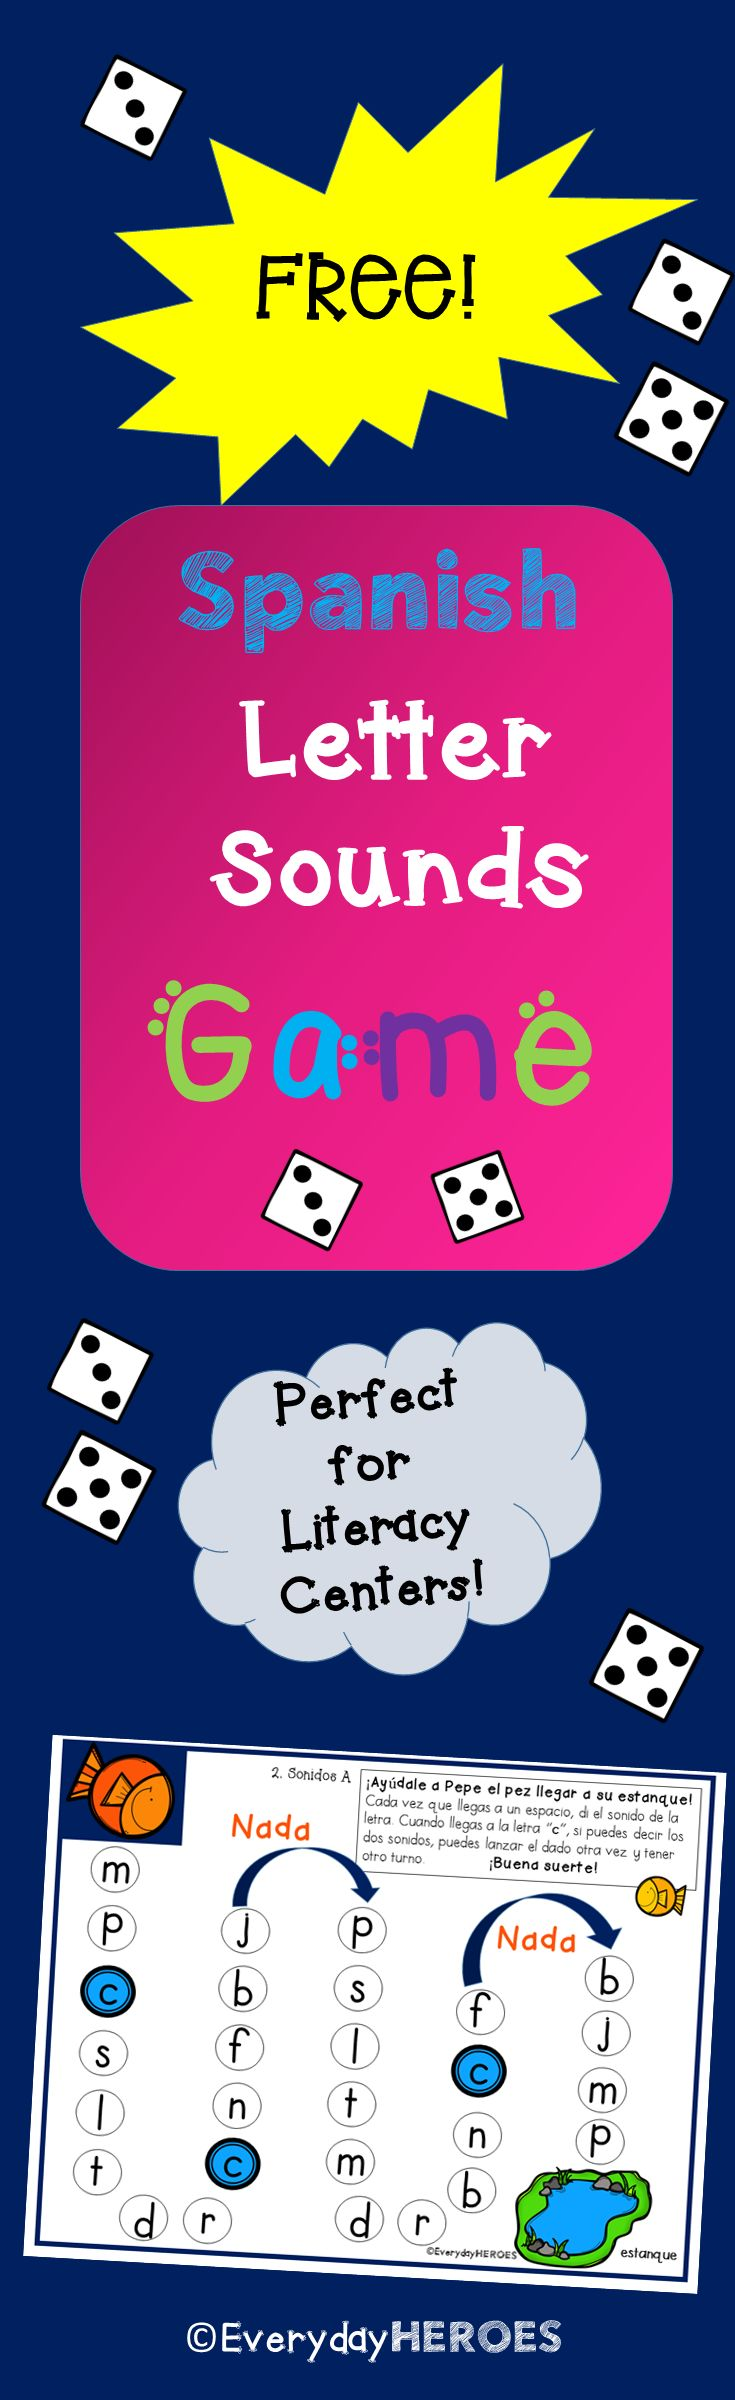 Your students will love practicing the letter sounds with this game! I hope you enjoy this freebie in your classroom.